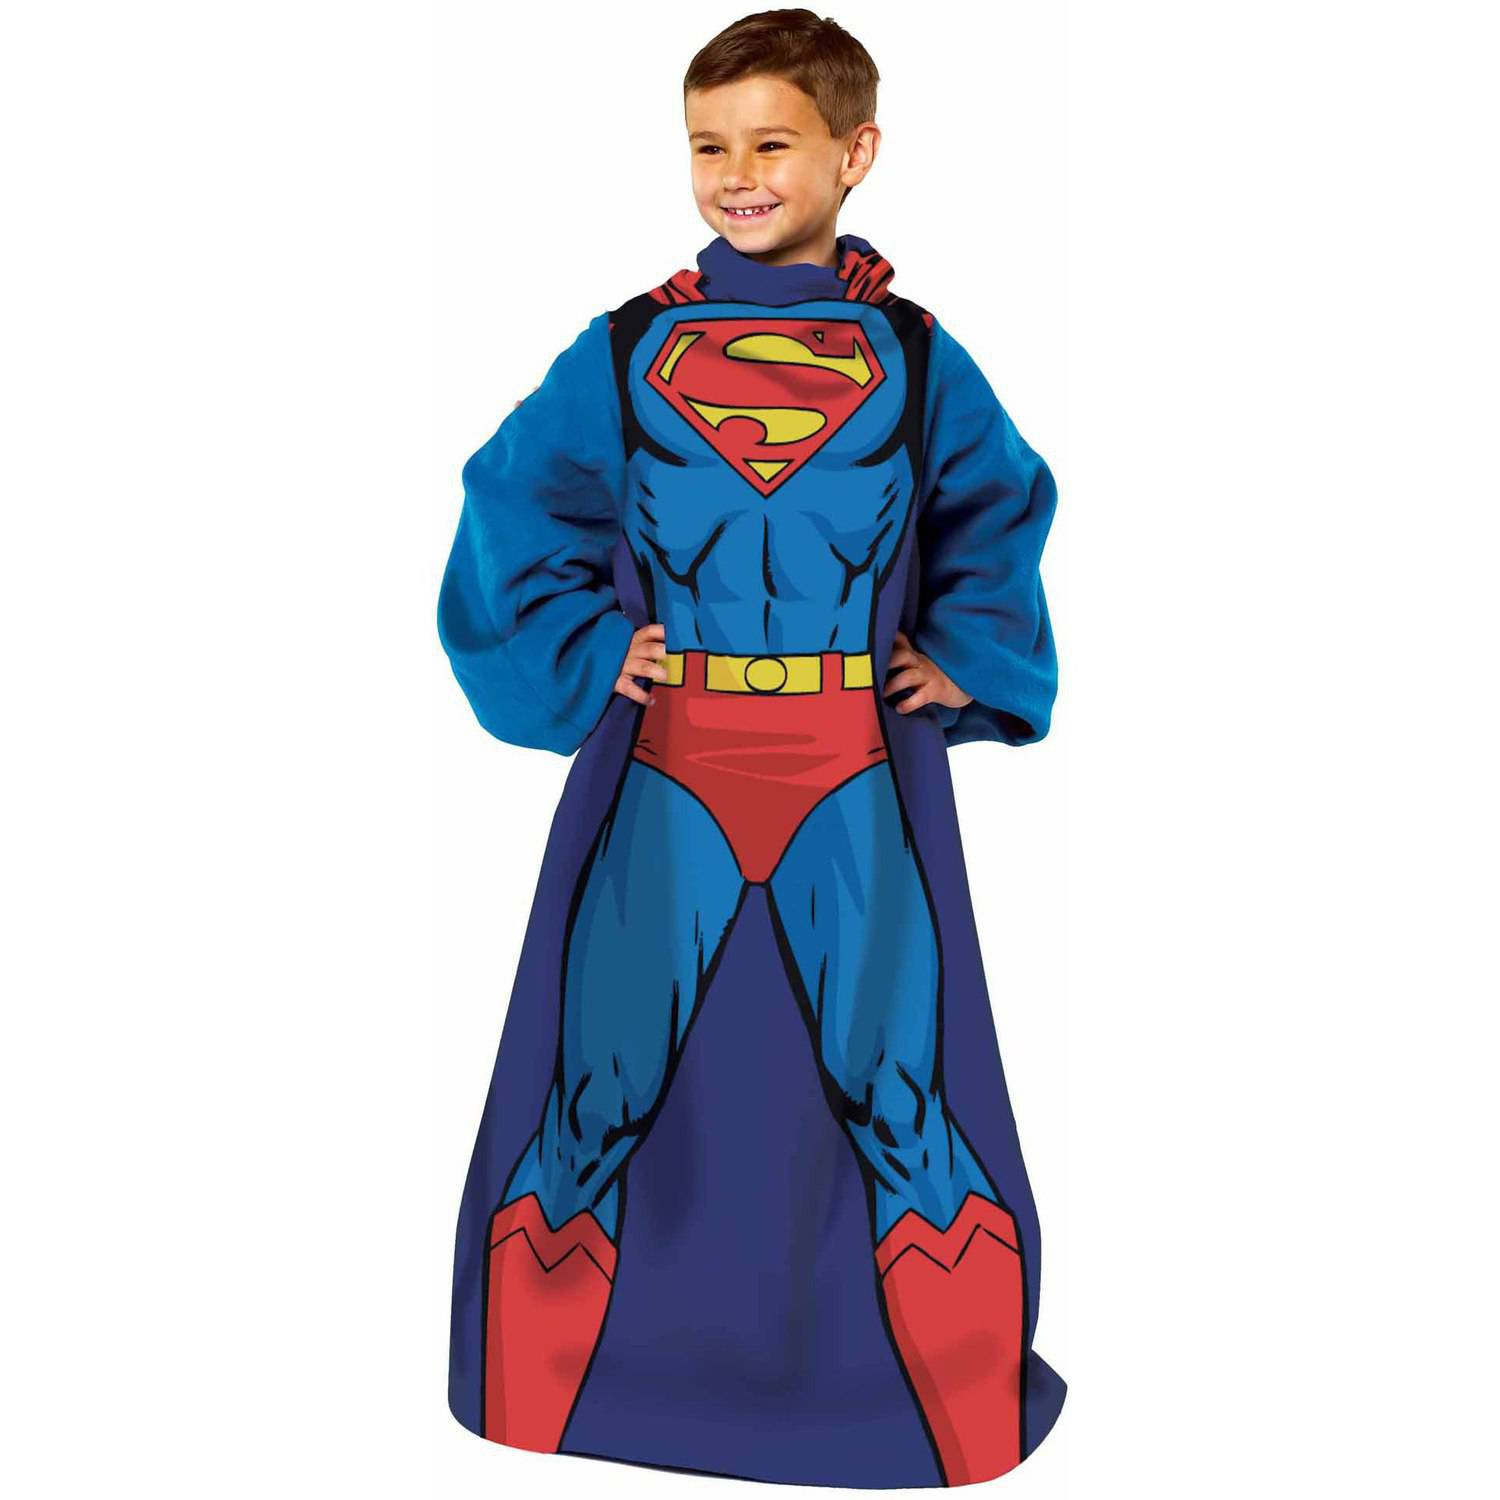 "Warner Bros. Superman ""Being Action Superman"" Youth Comfy Throw"